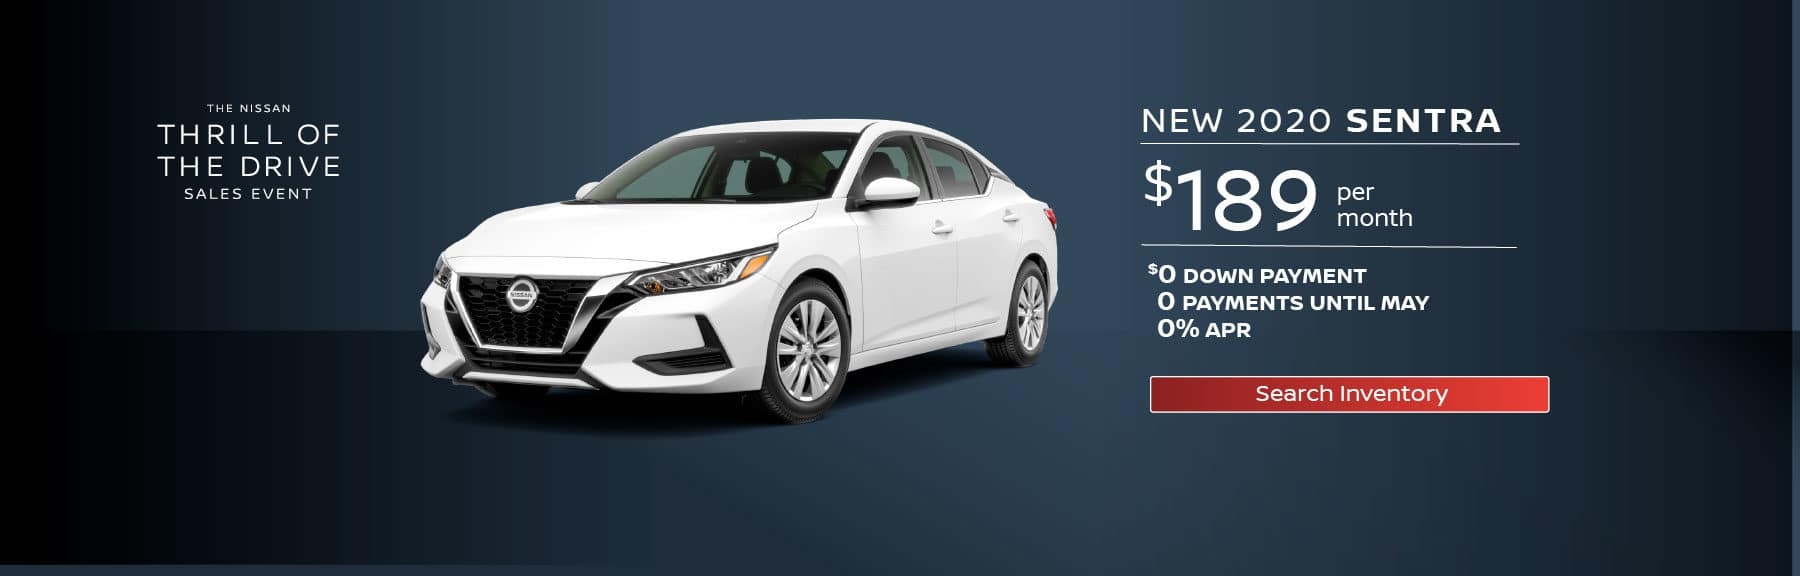 New 2020 Sentra $189 per month, $0 Down, 0 Payments Until May, 0% APR available